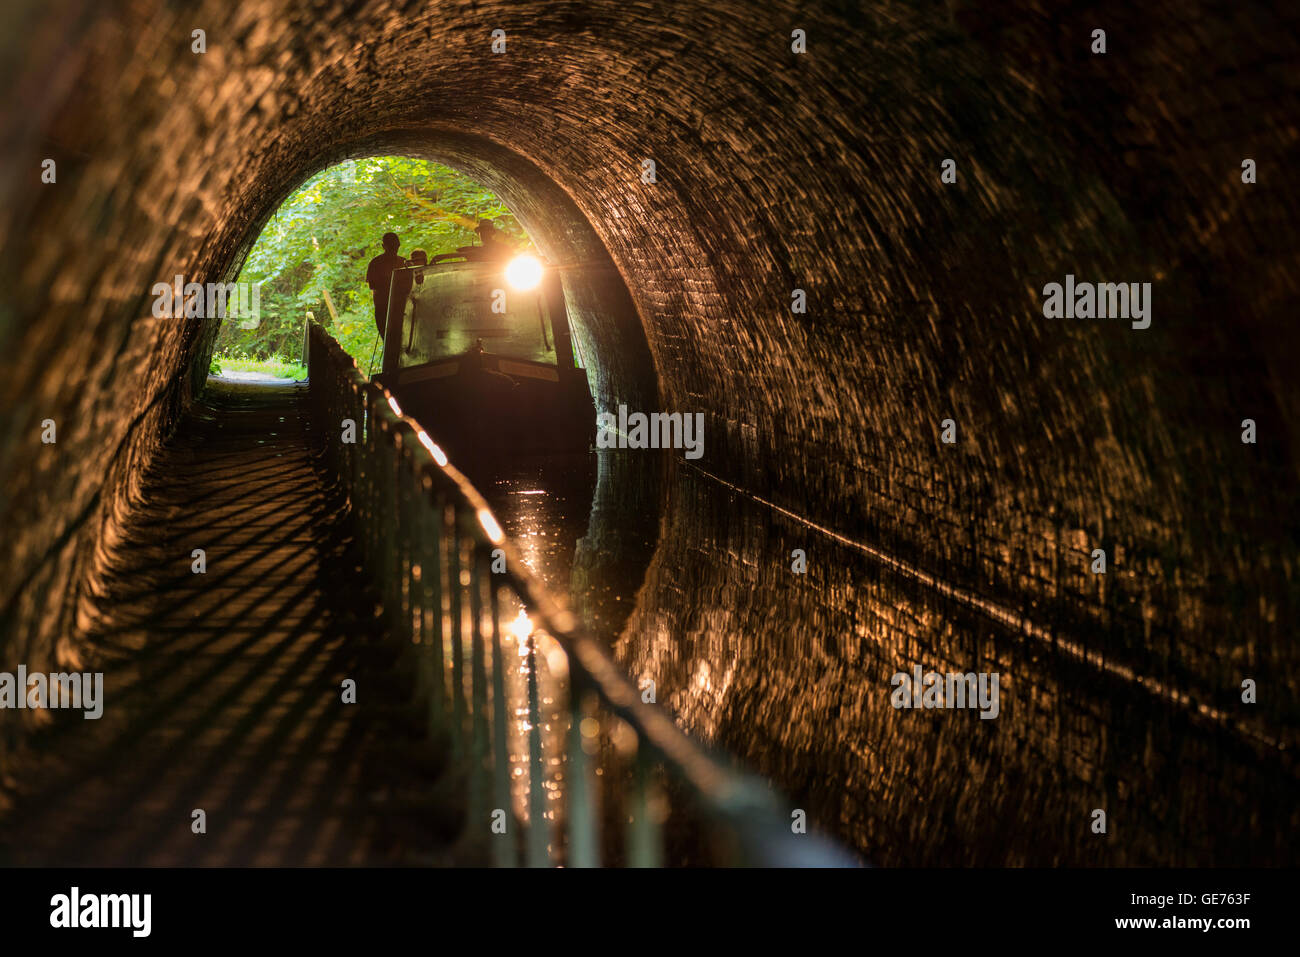 A canal boat passing through Ellesmere Tunnel on the Llangollen Canal in Shropshire. - Stock Image